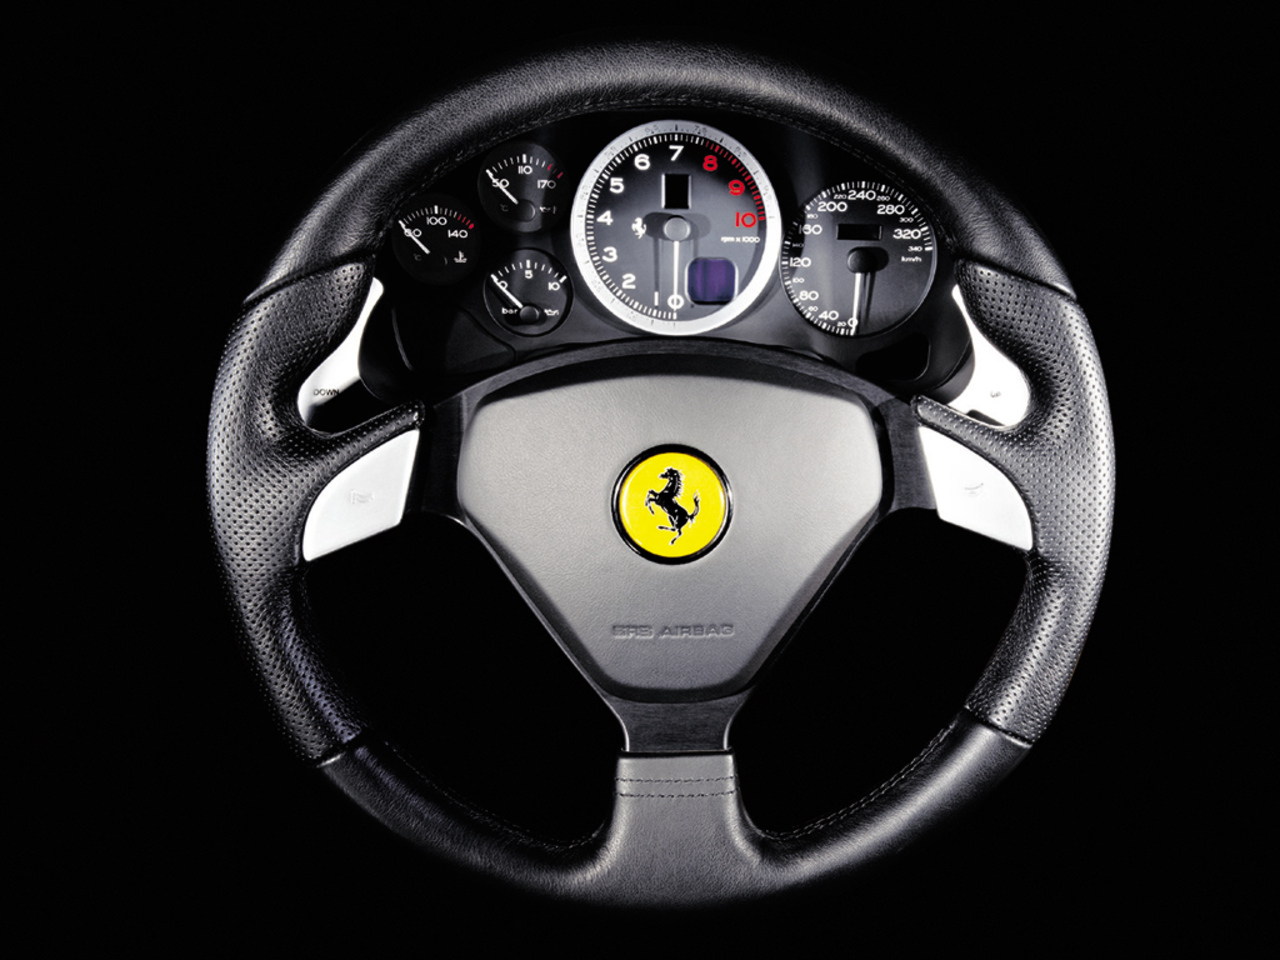 575M Maranello, steering wheel